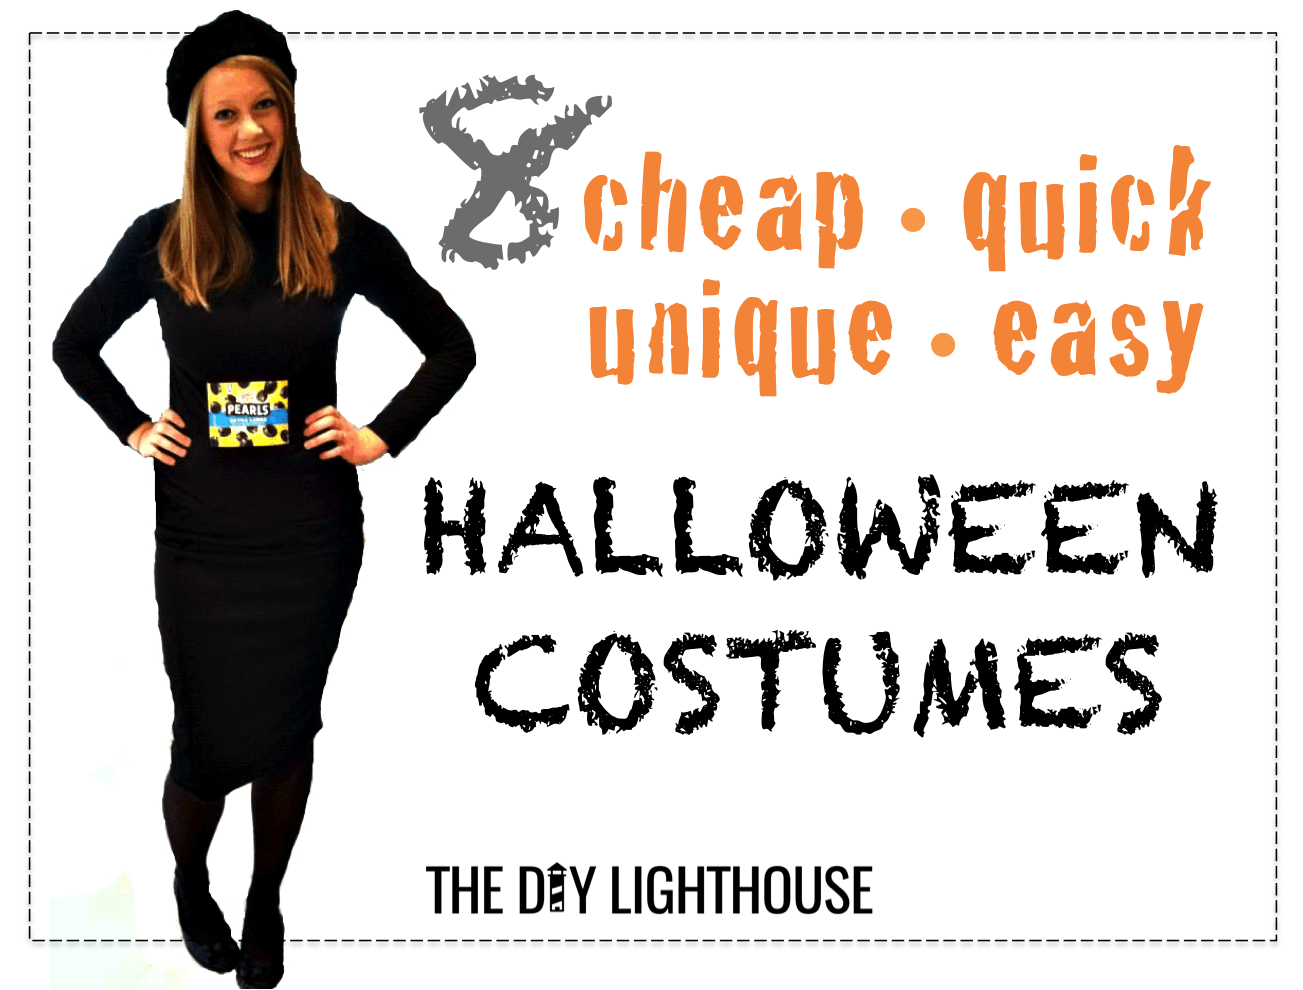 8 ideas for cheap quick unique and easy halloween costumes  sc 1 st  The DIY Lighthouse & Ideas for Cheap Quick Unique u0026 Easy Halloween Costumes